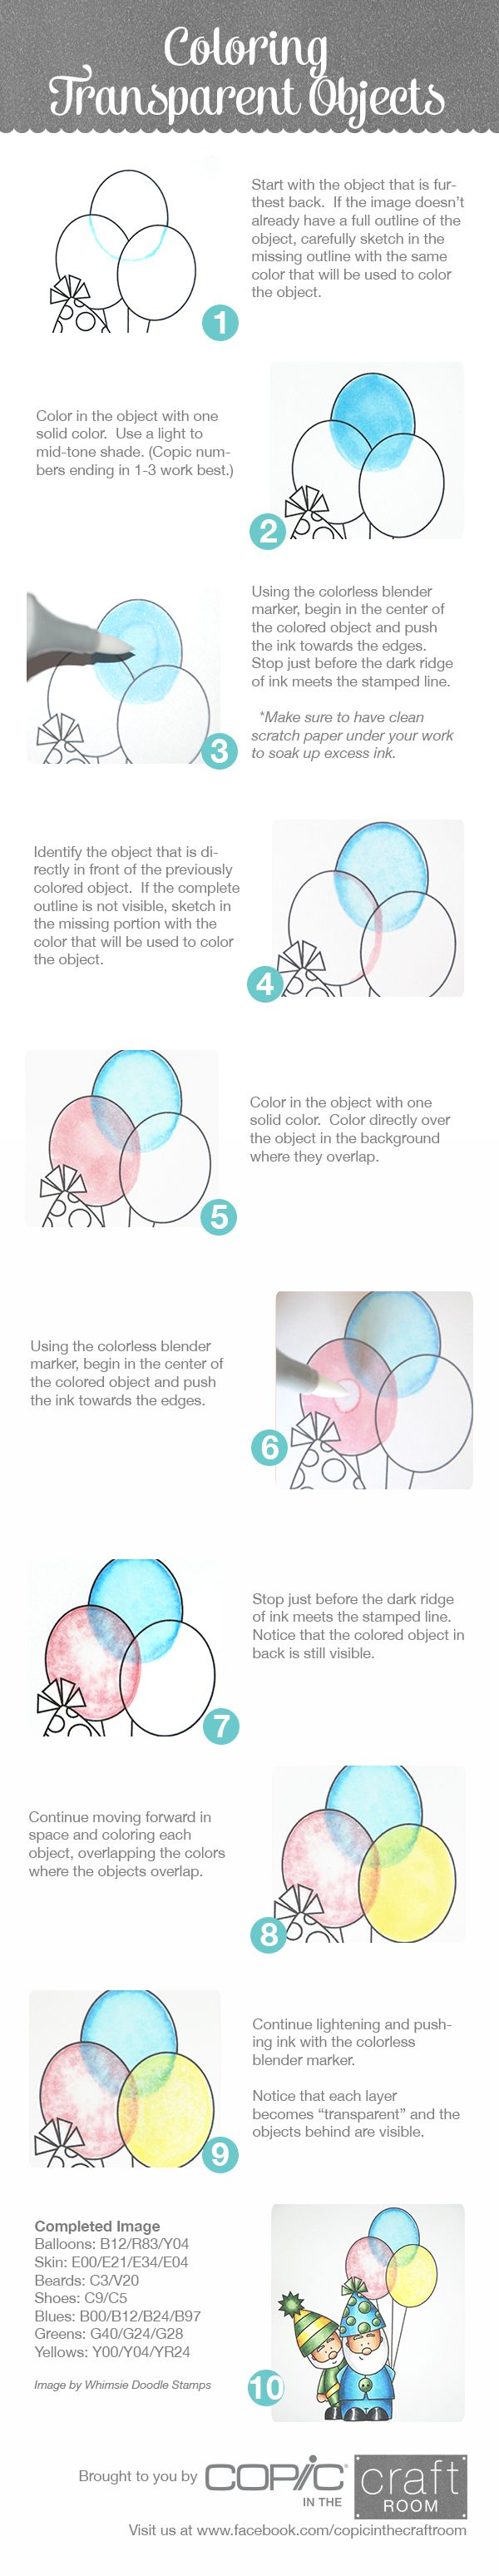 Brought to you by Copic in the Craft Room! How to color transparent objects. Image from Whimsie Doodle Stamps. Visit us at www.facebook.com/copicinthecraftroom